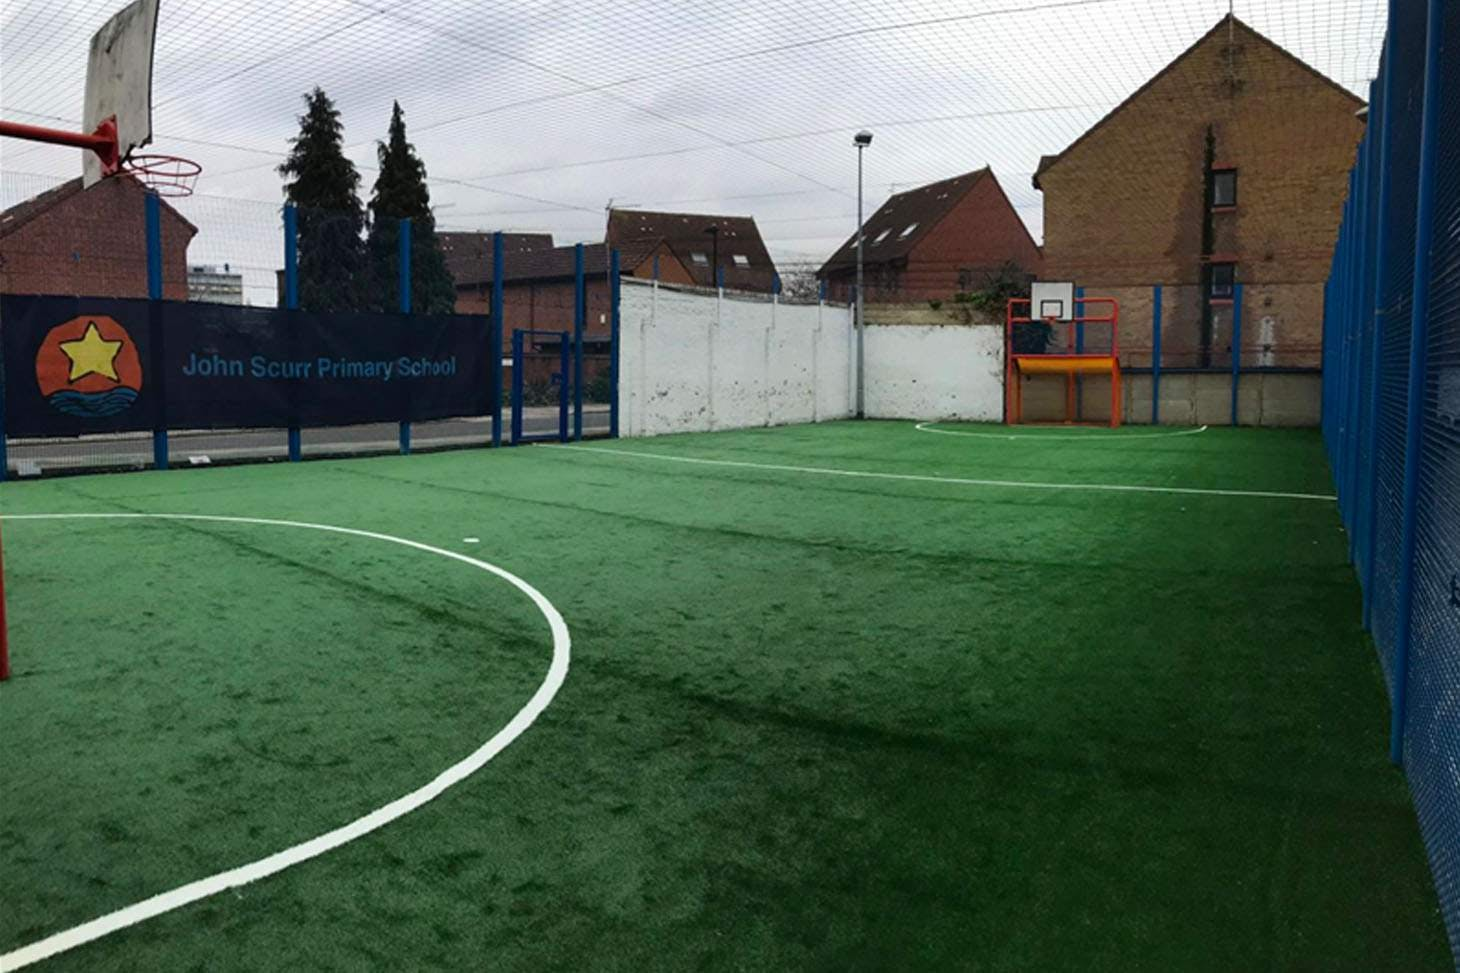 John Scurr Primary School 5 a side | 3G Astroturf football pitch